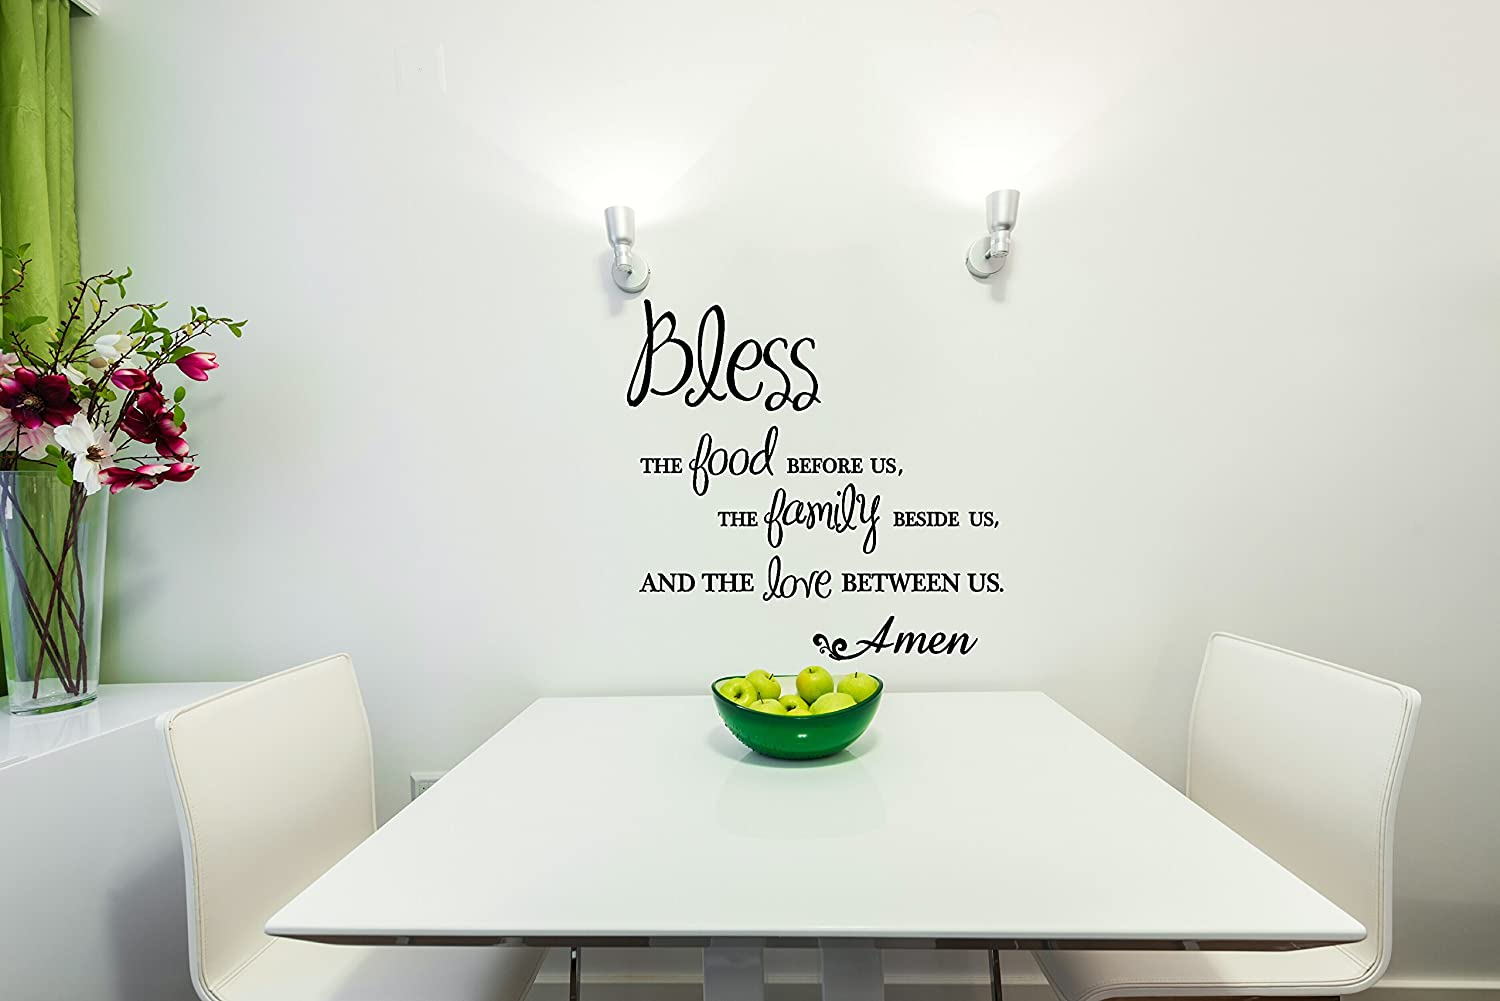 Bless The Food Before The Family Beside us and The Love Between Us Amen Wall Vinyl Sticker Lettering Decal 18Wx18H Black